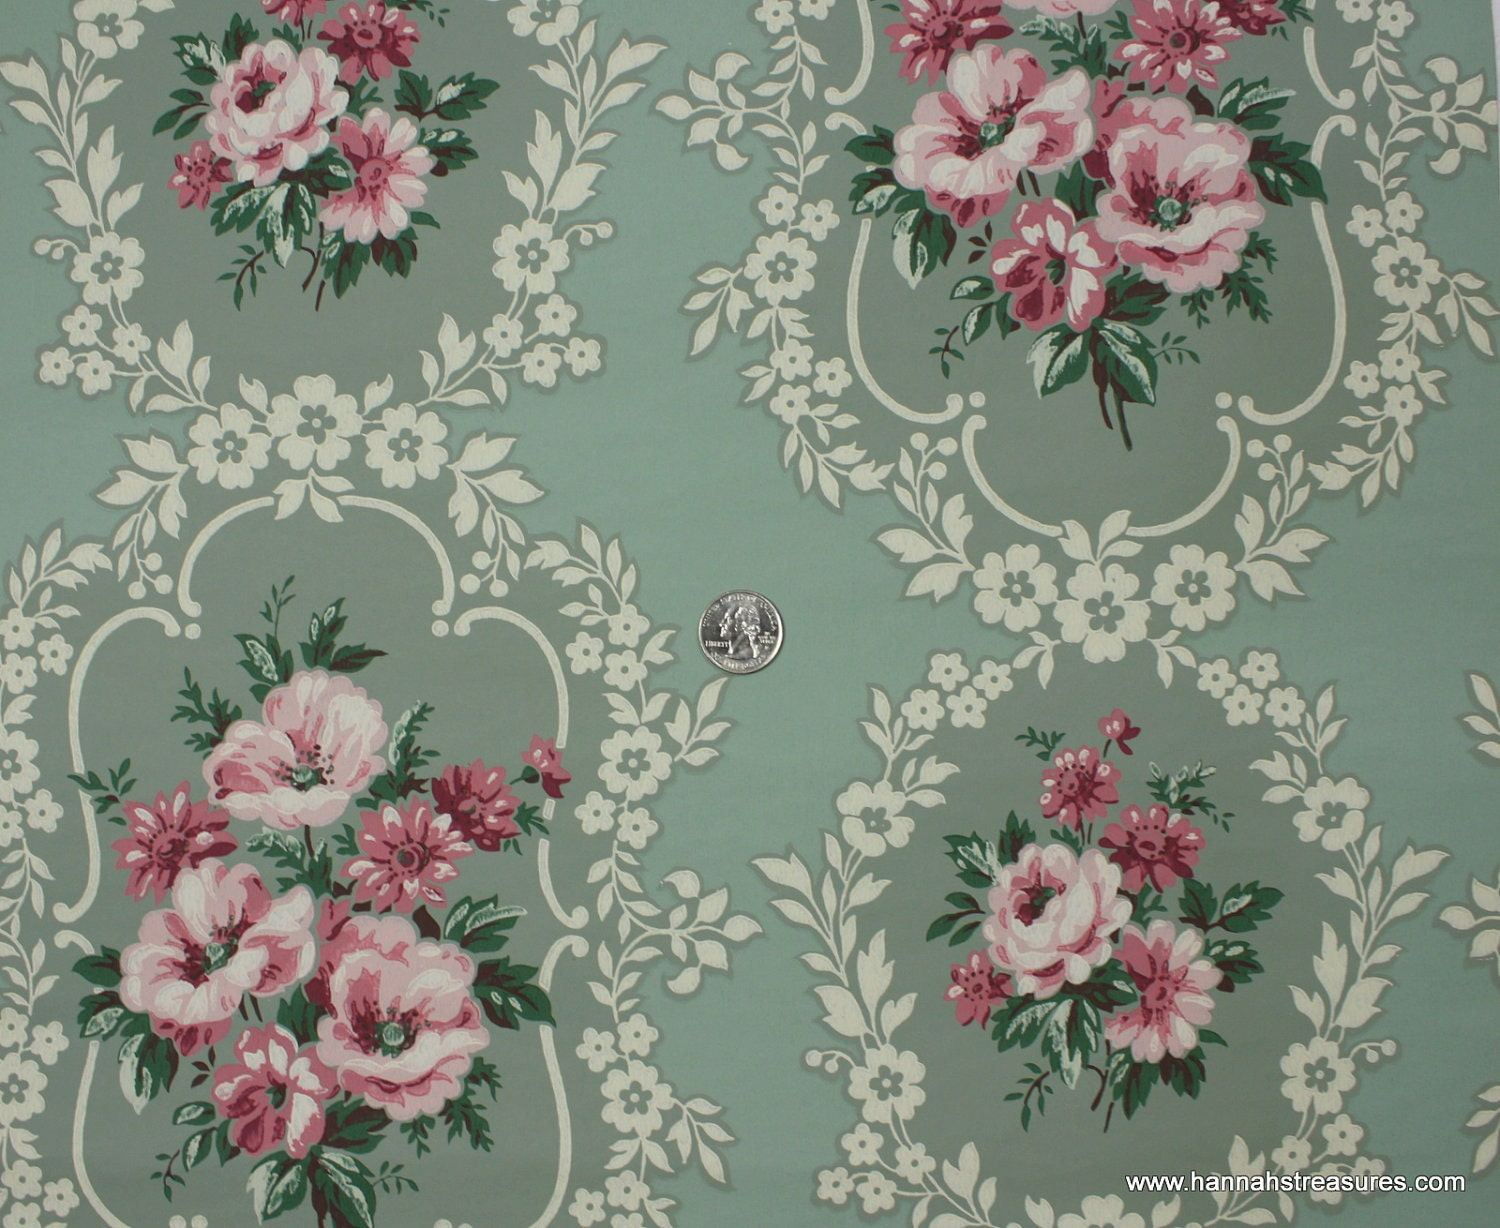 1940's Vintage Wallpaper Pink Floral On Green Background